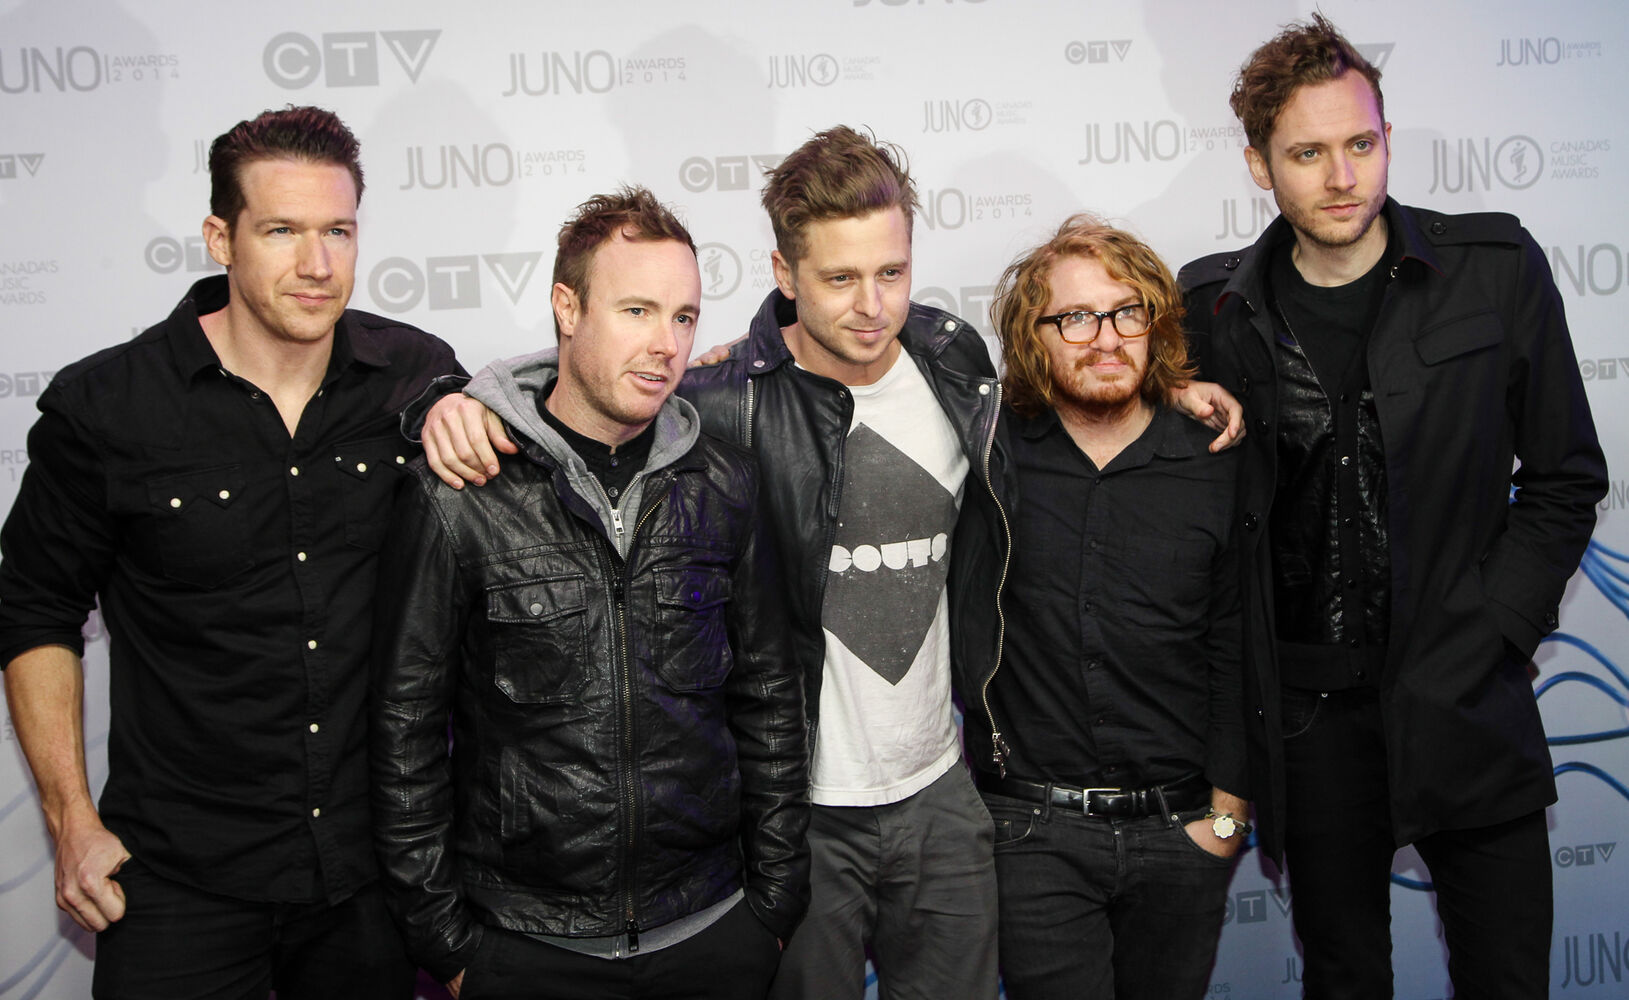 Juno performers OneRepublic arrive on the red carpet (Joe Bryksa / Winnipeg Free Press)